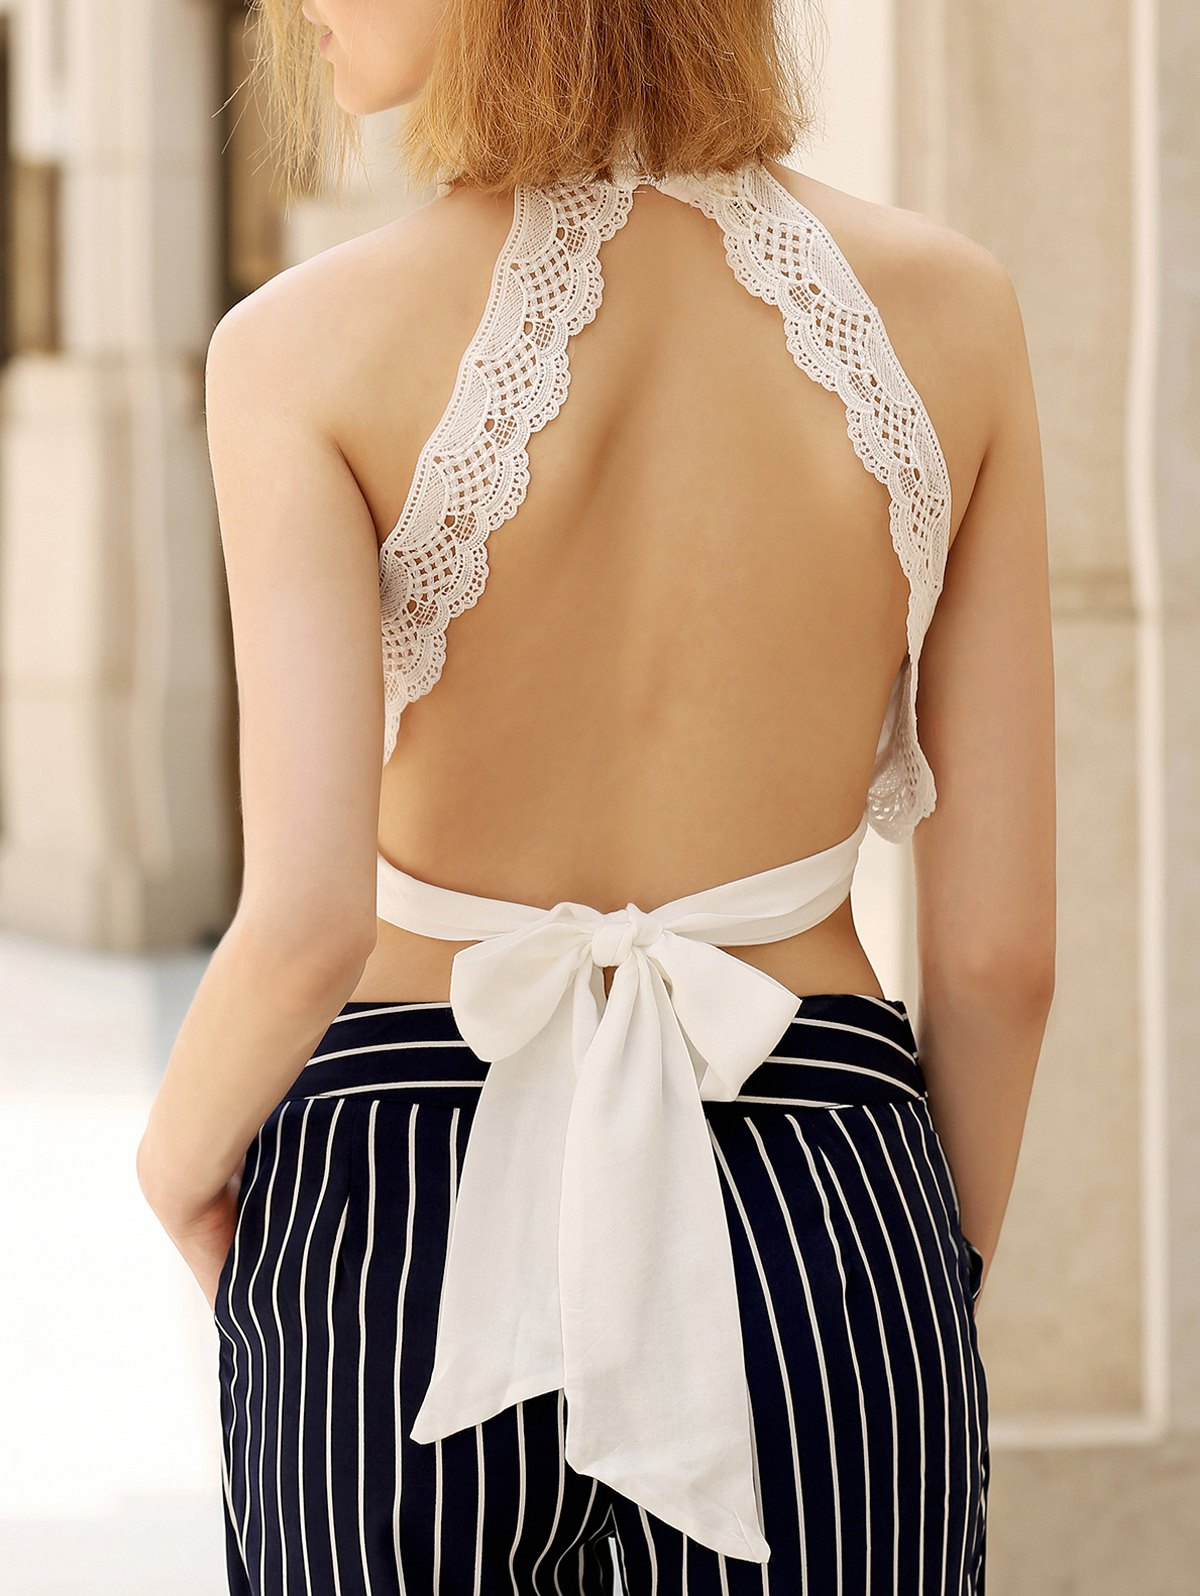 Alluring Women's Plunging Sleeveless Lace Crop Top - WHITE S